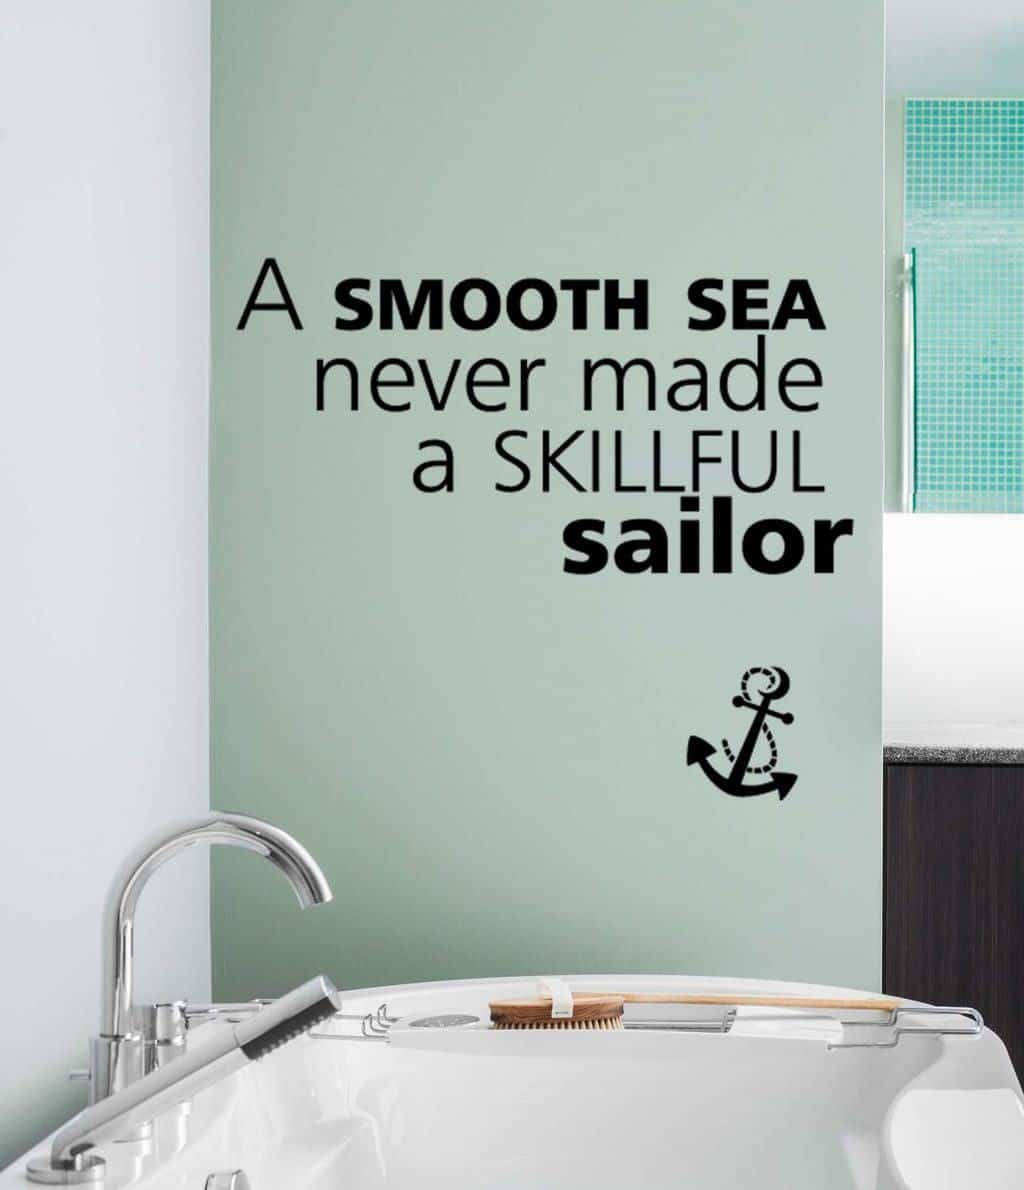 A smooth sea never made a skillful sailor wall decal sticker